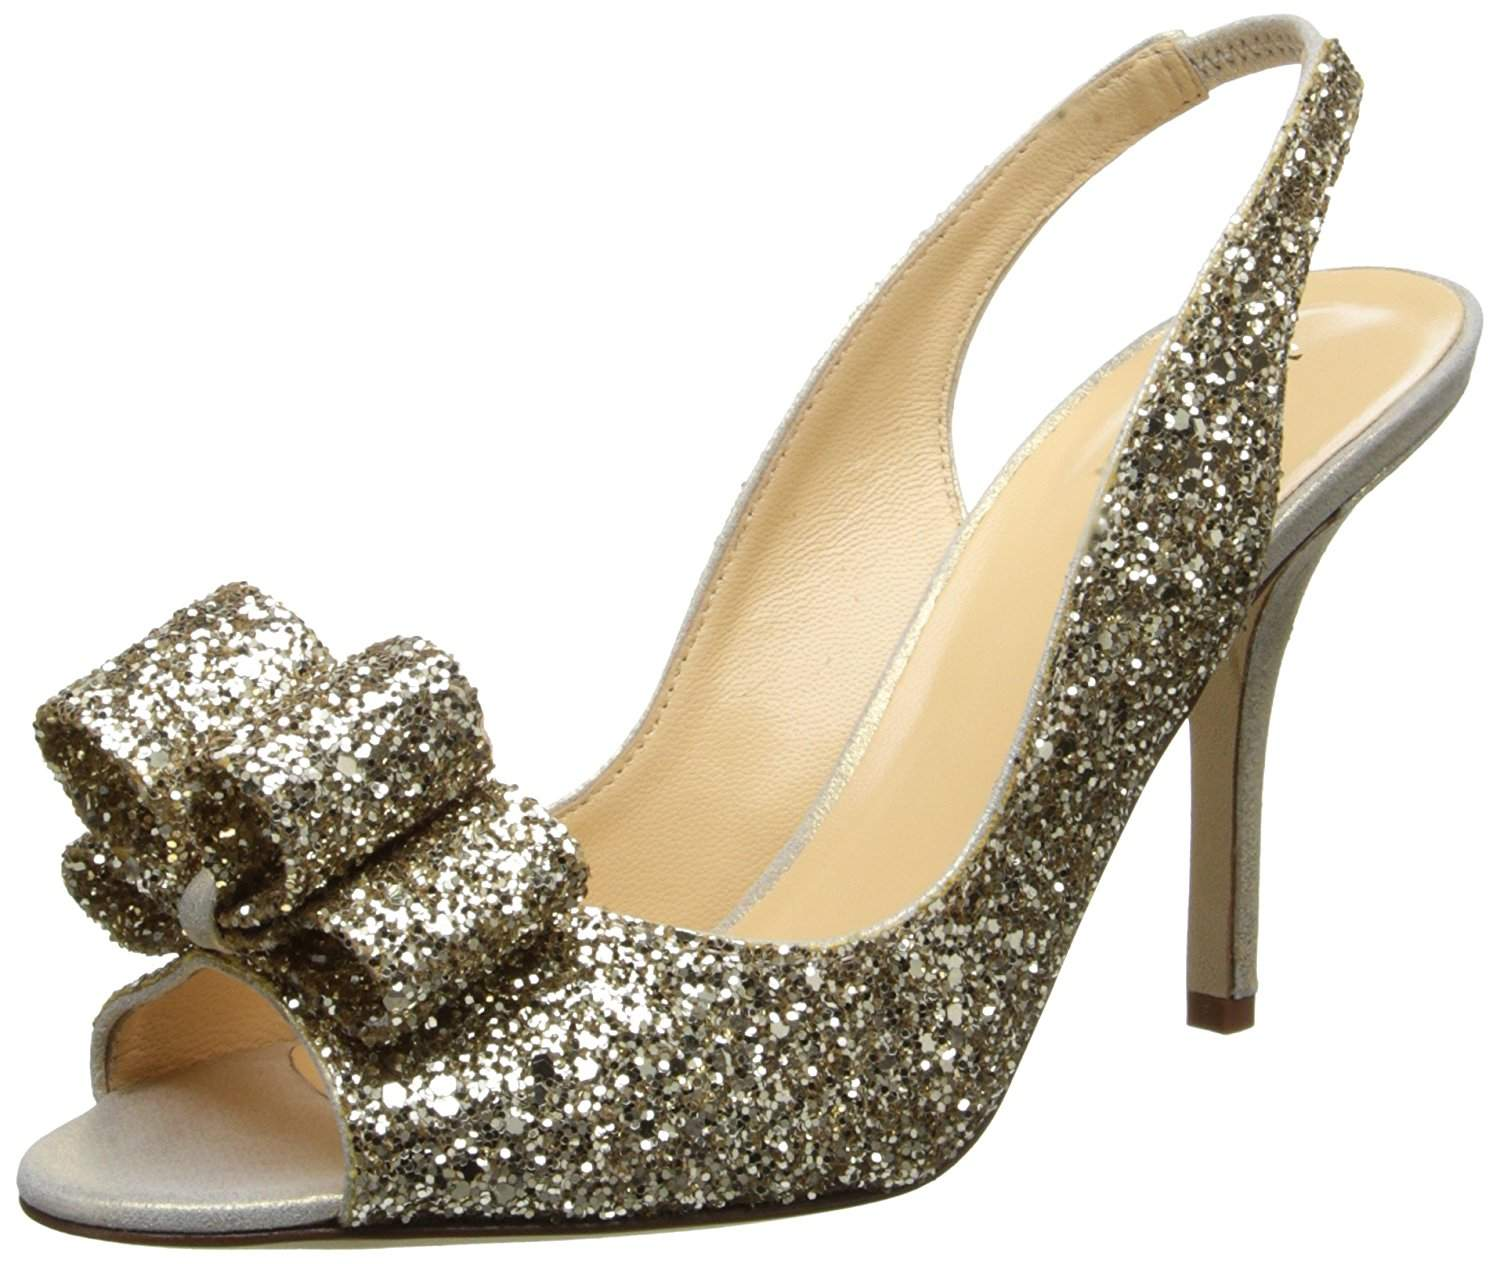 Top Shoe Brands For Perfect Bridal Heels